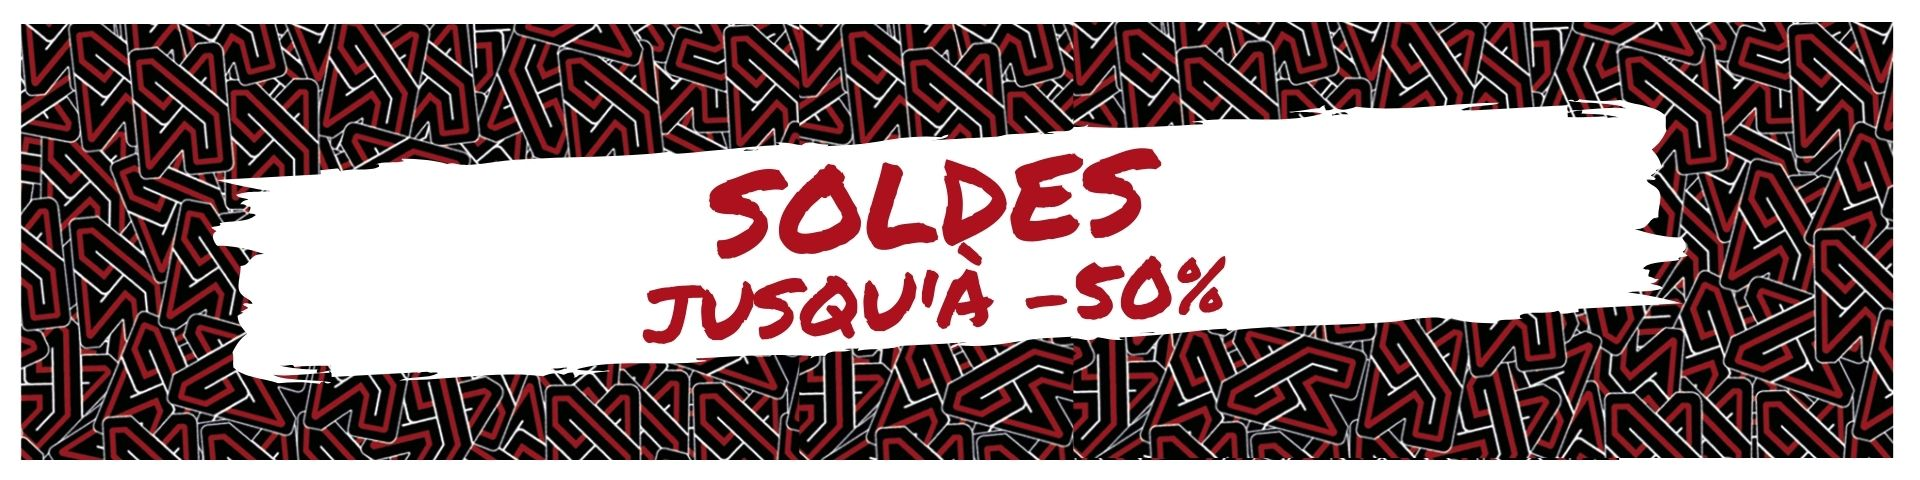 SOLDES X-RAY HIVER 2021 FR